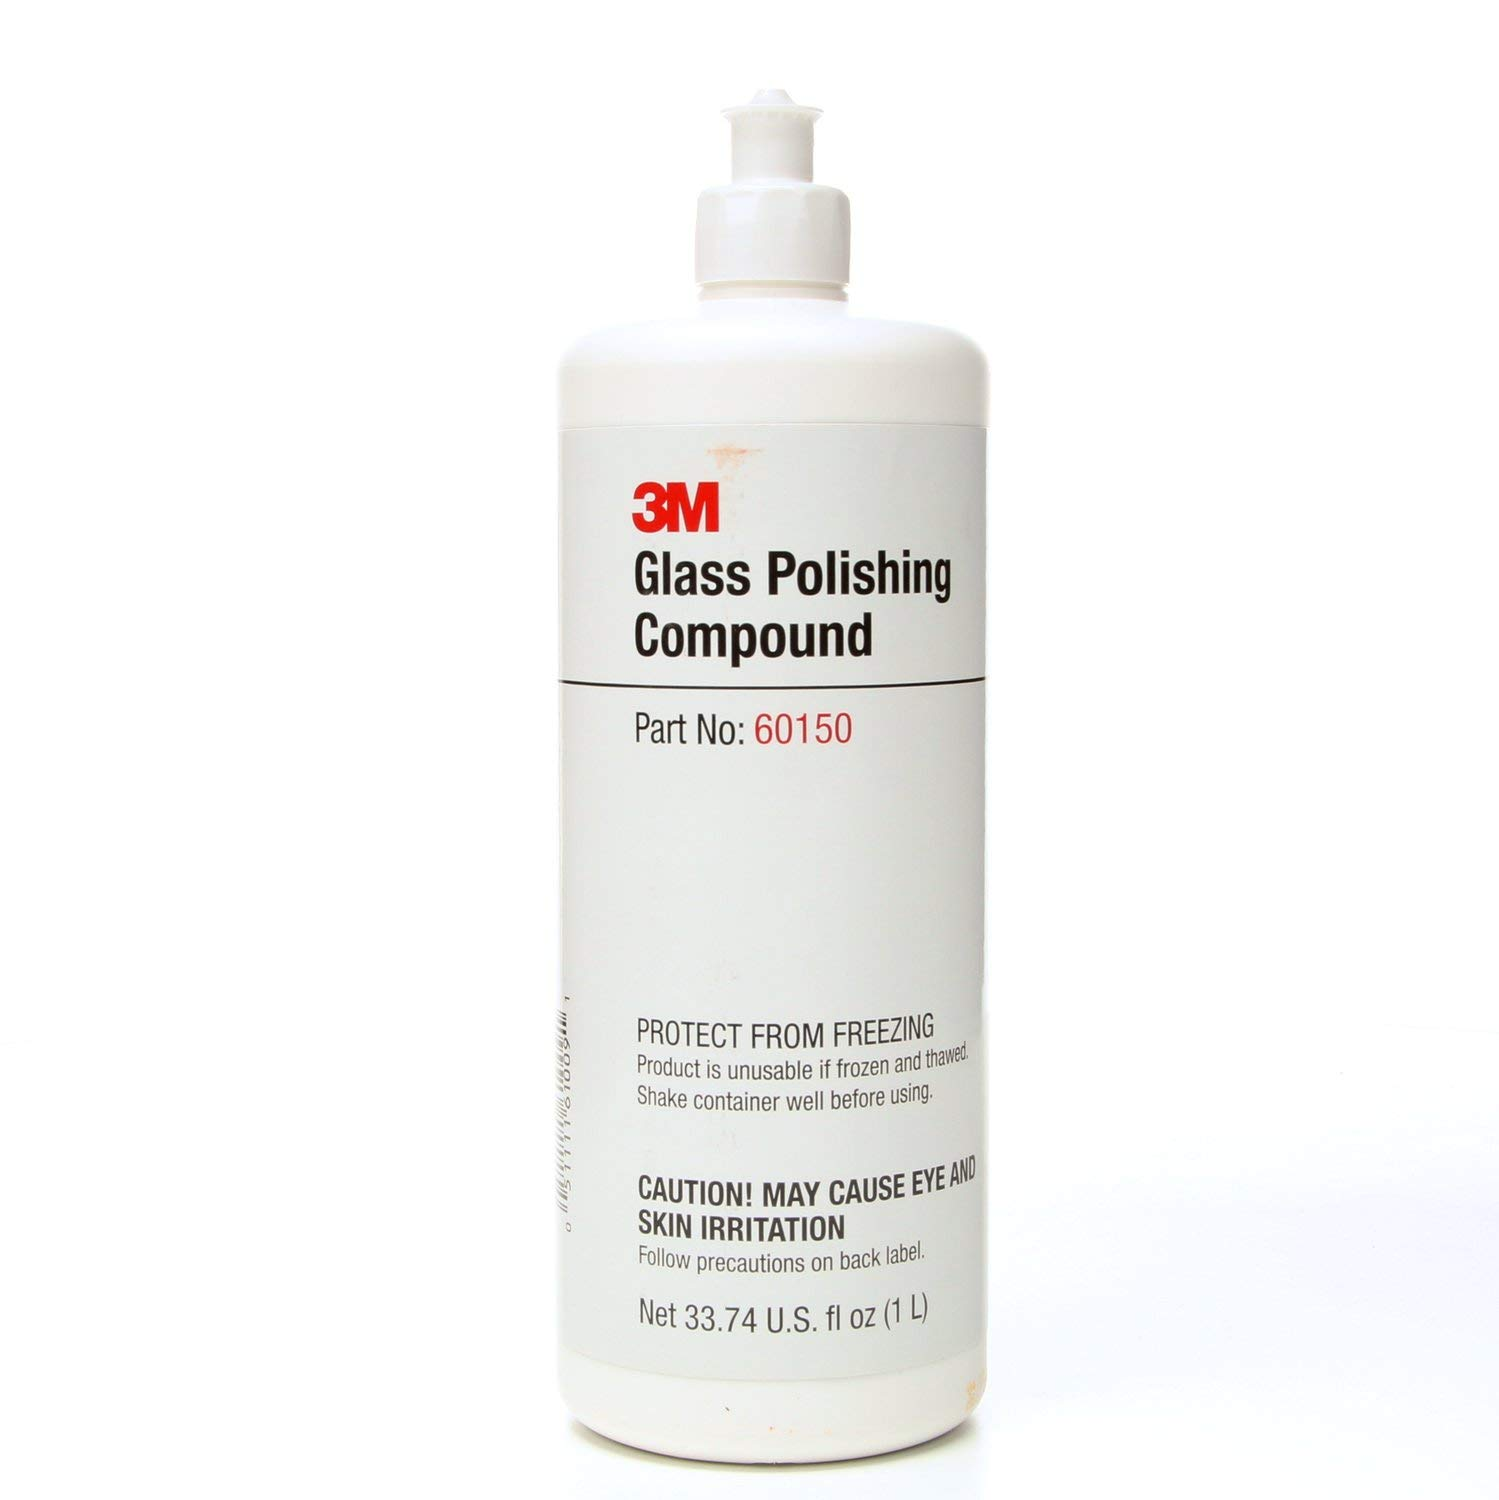 3M Glass Polishing Compound 60150, 1L Capacity, White (Pack of 1) 051111610091